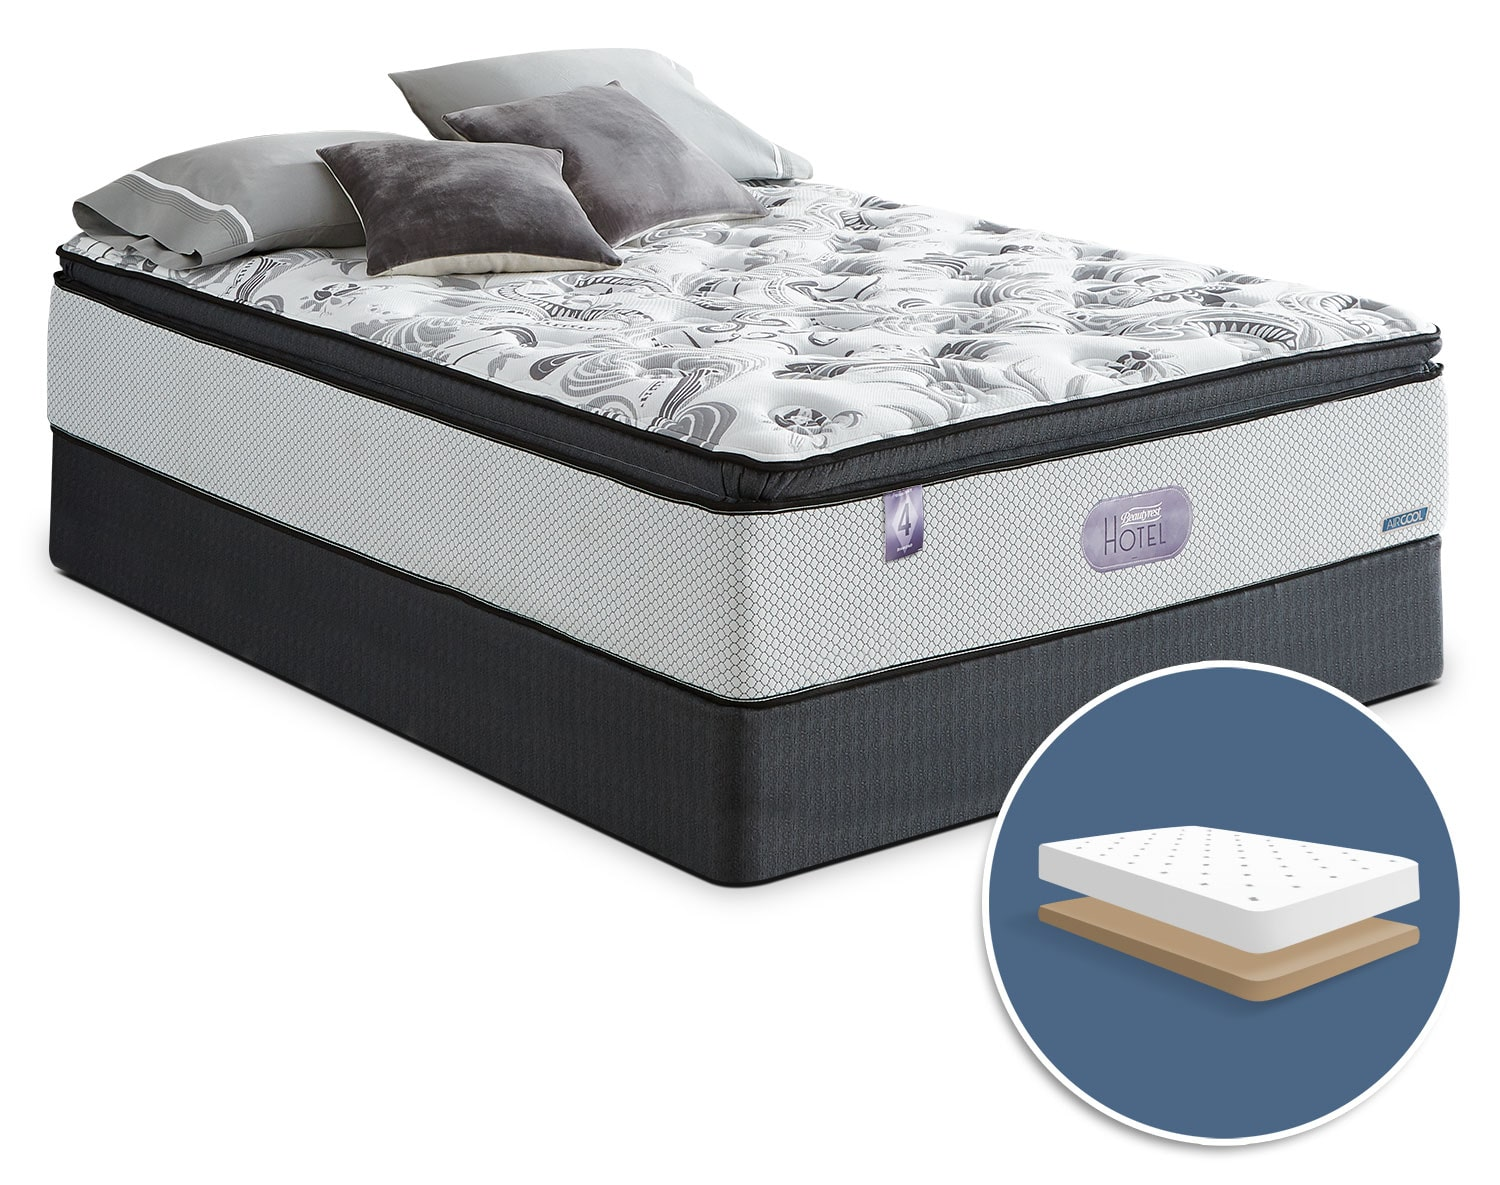 Mattresses and Bedding - Simmons Beautyrest® Hotel Diamond 4.0 Hi-Loft Pillow-Top Low-Profile Full Mattress Set